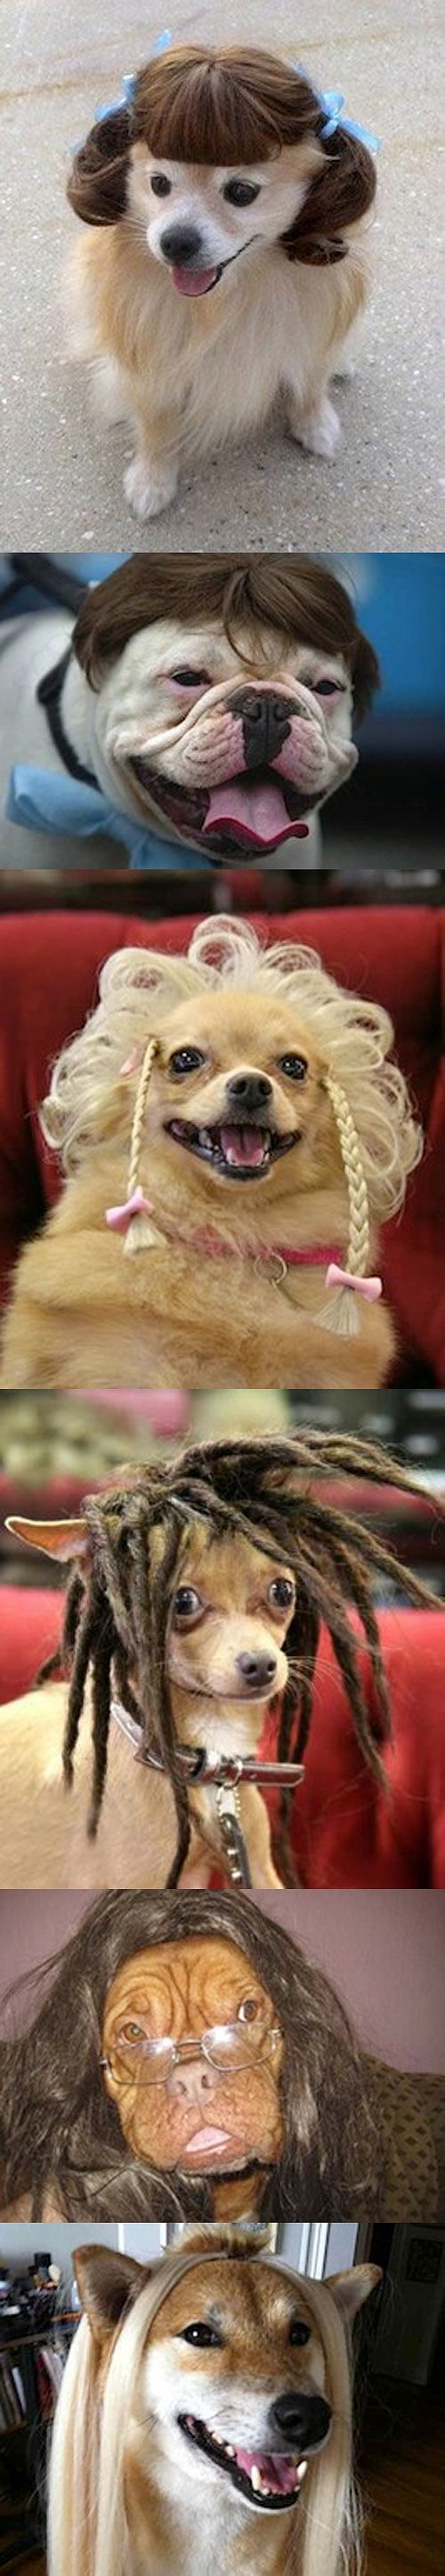 Dogs with human hair! :D